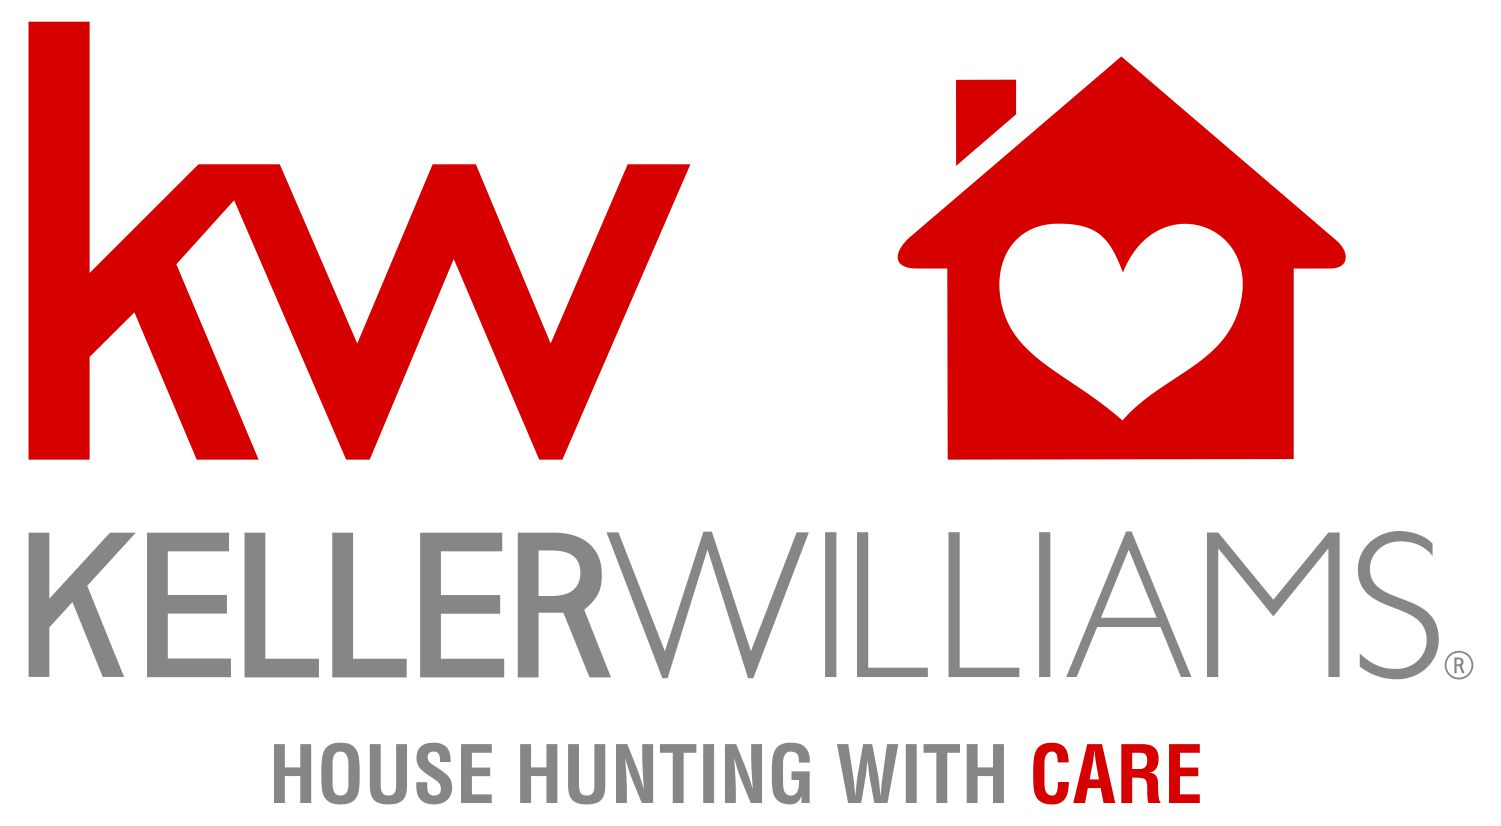 Caroline-Witham House Hunting with Care